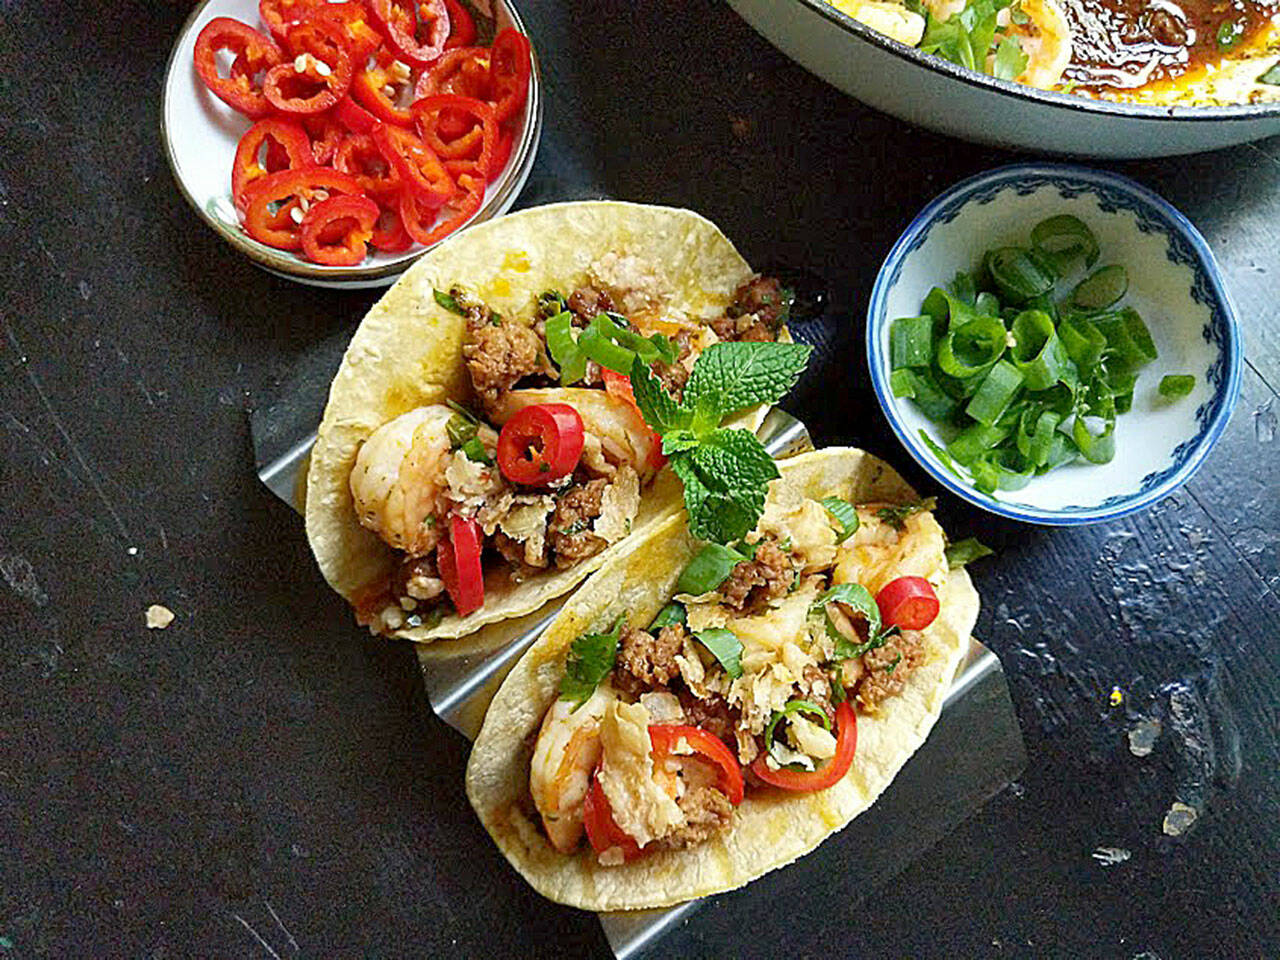 One Night in Bangkok tacos feature shrimp and chorizo in a spicy-sweet sauce. (Gretchen McKay / Pittsburgh Post-Gazette)